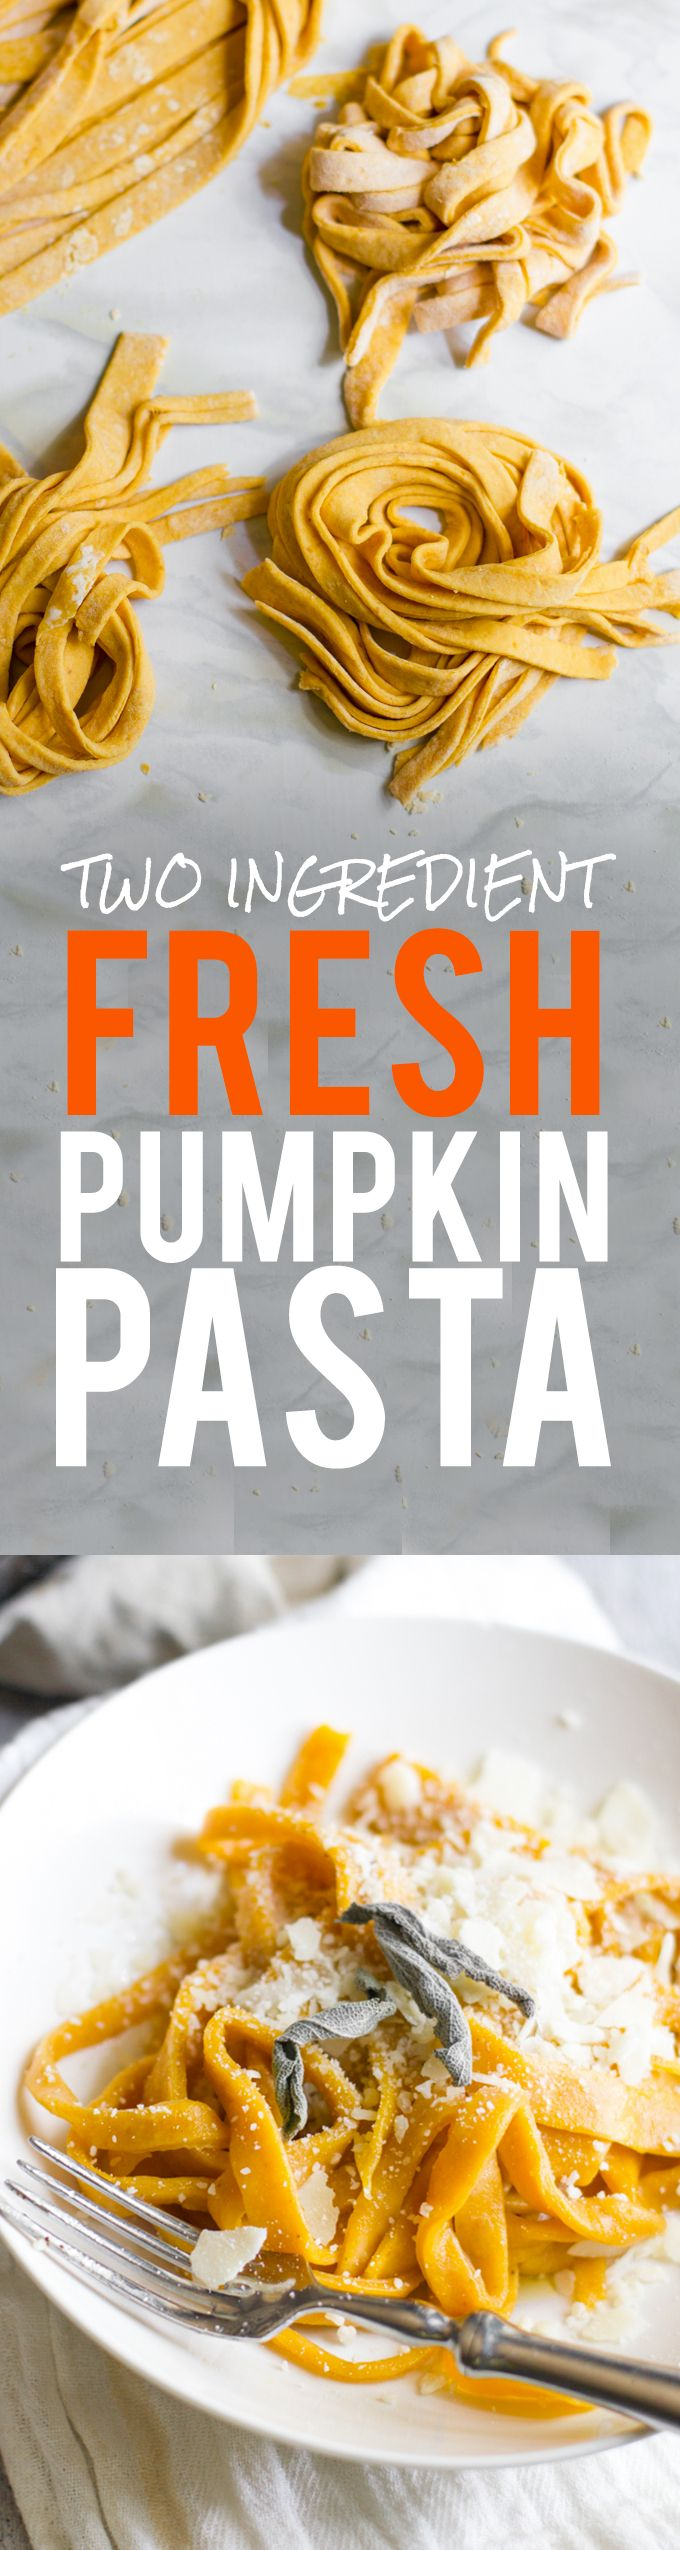 Two Ingredient Fresh Pumpkin Pasta